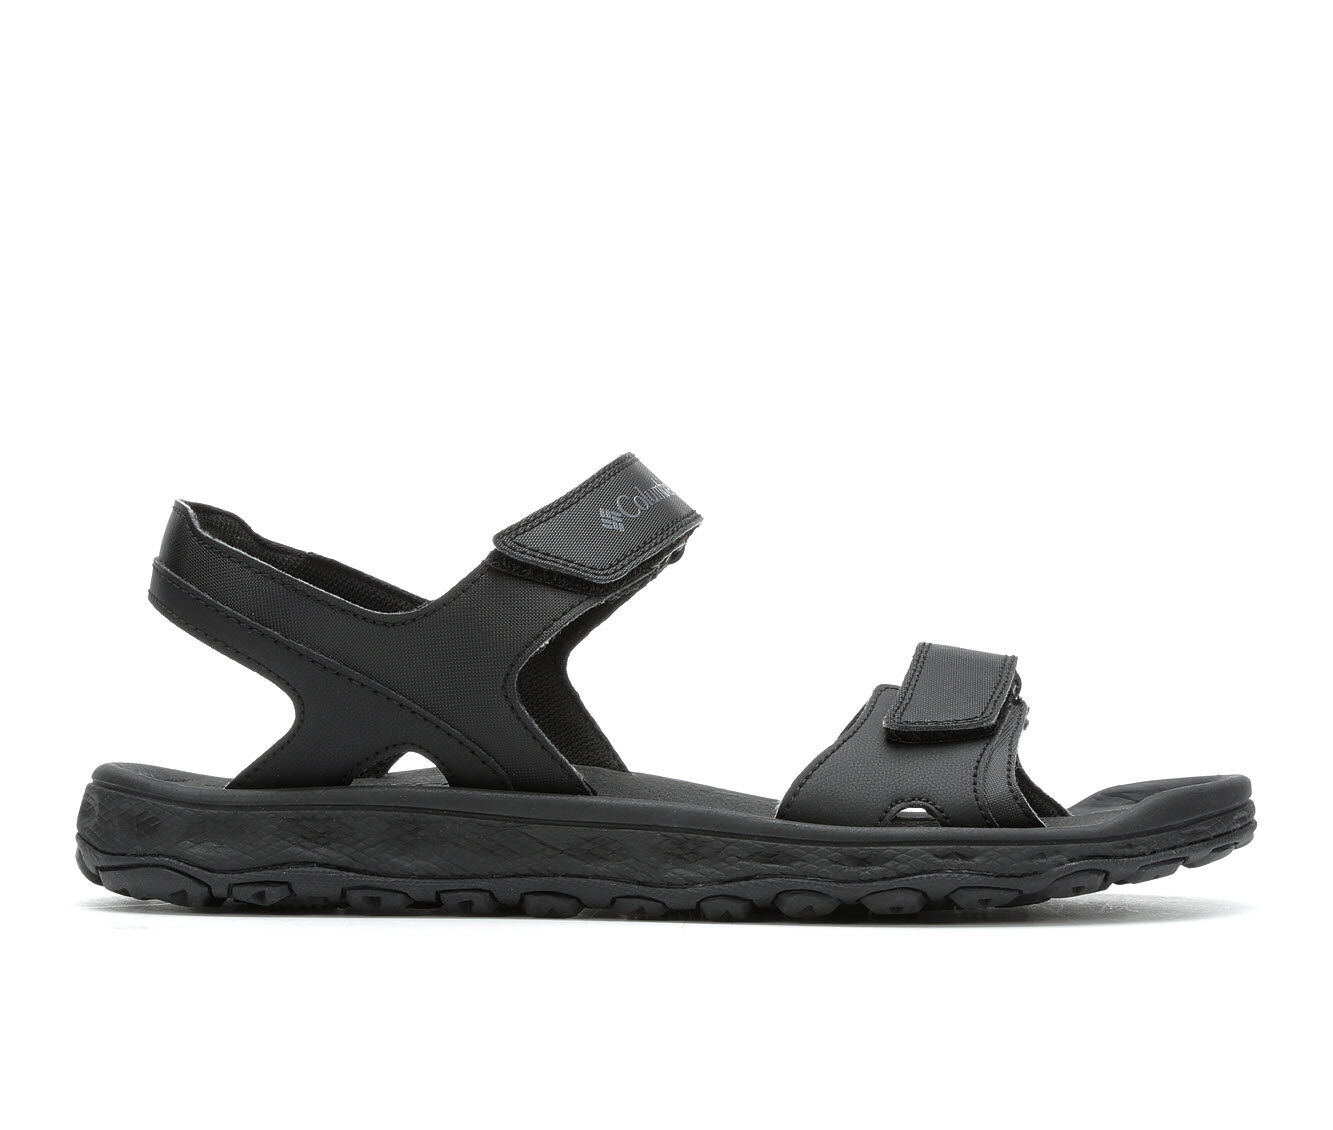 cheapest latest series Men's Columbia Buxton 2 Strap Outdoor Sandals Black/Charcoal